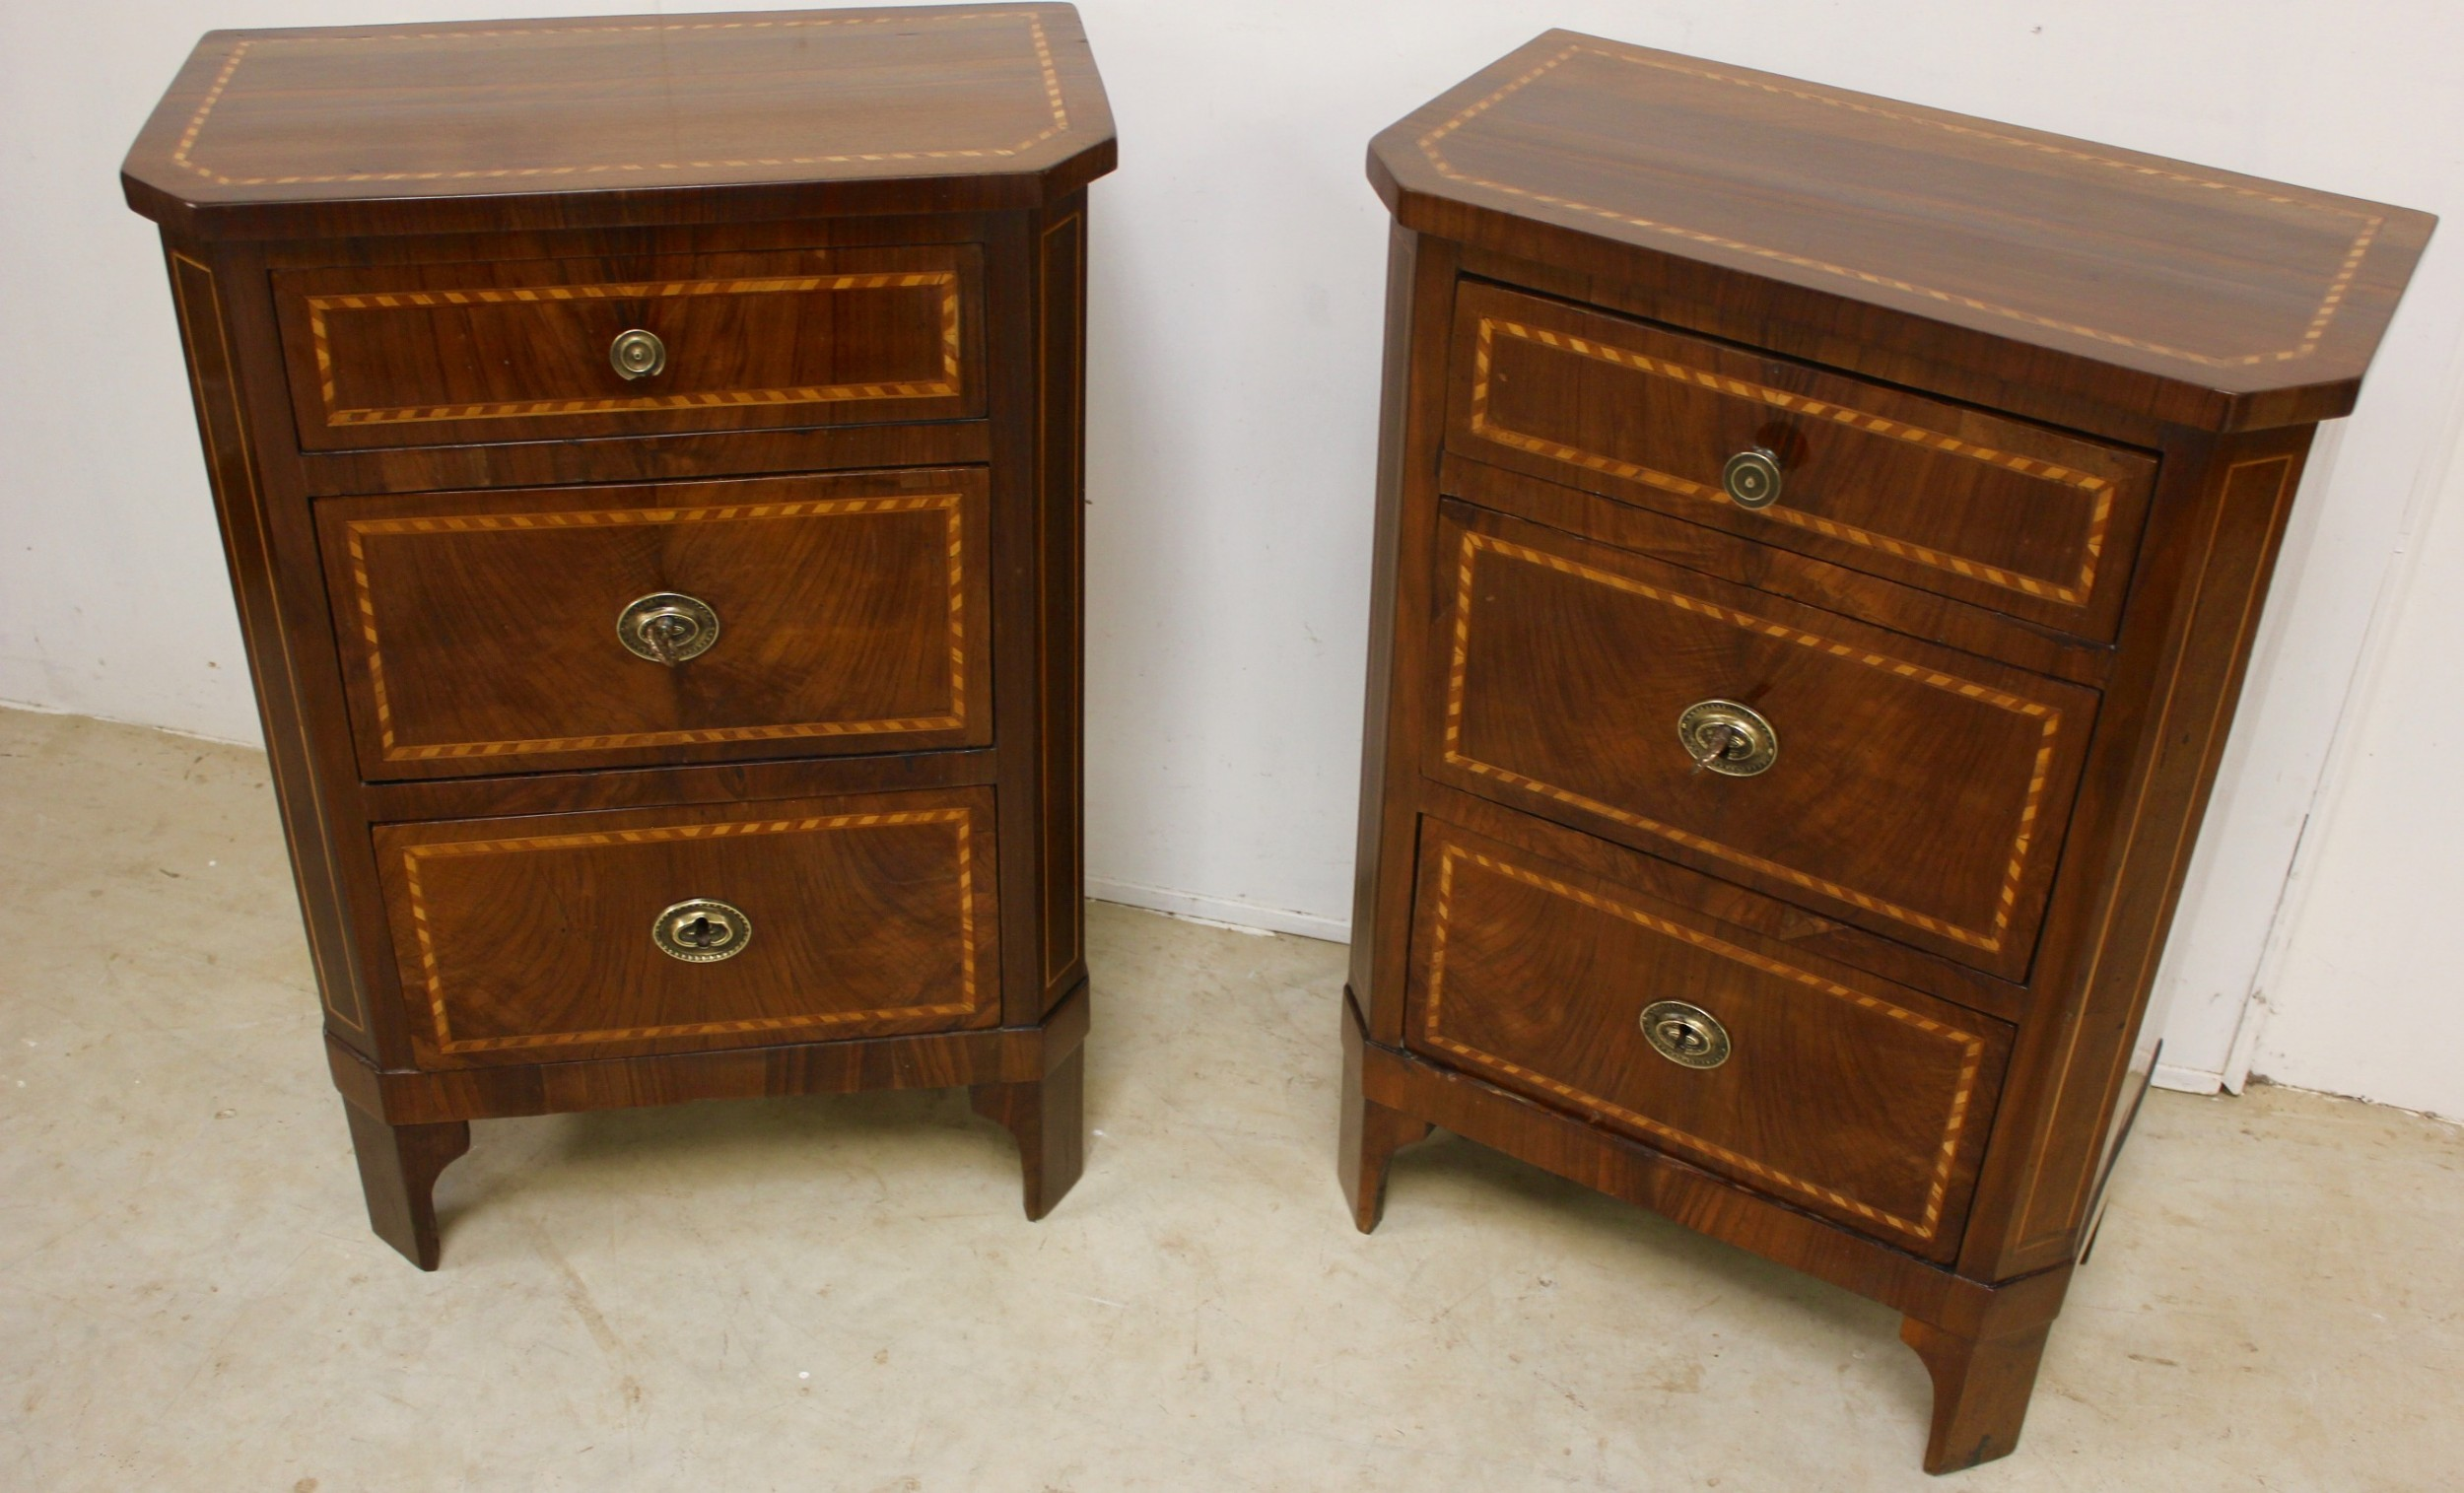 a pair of small chests